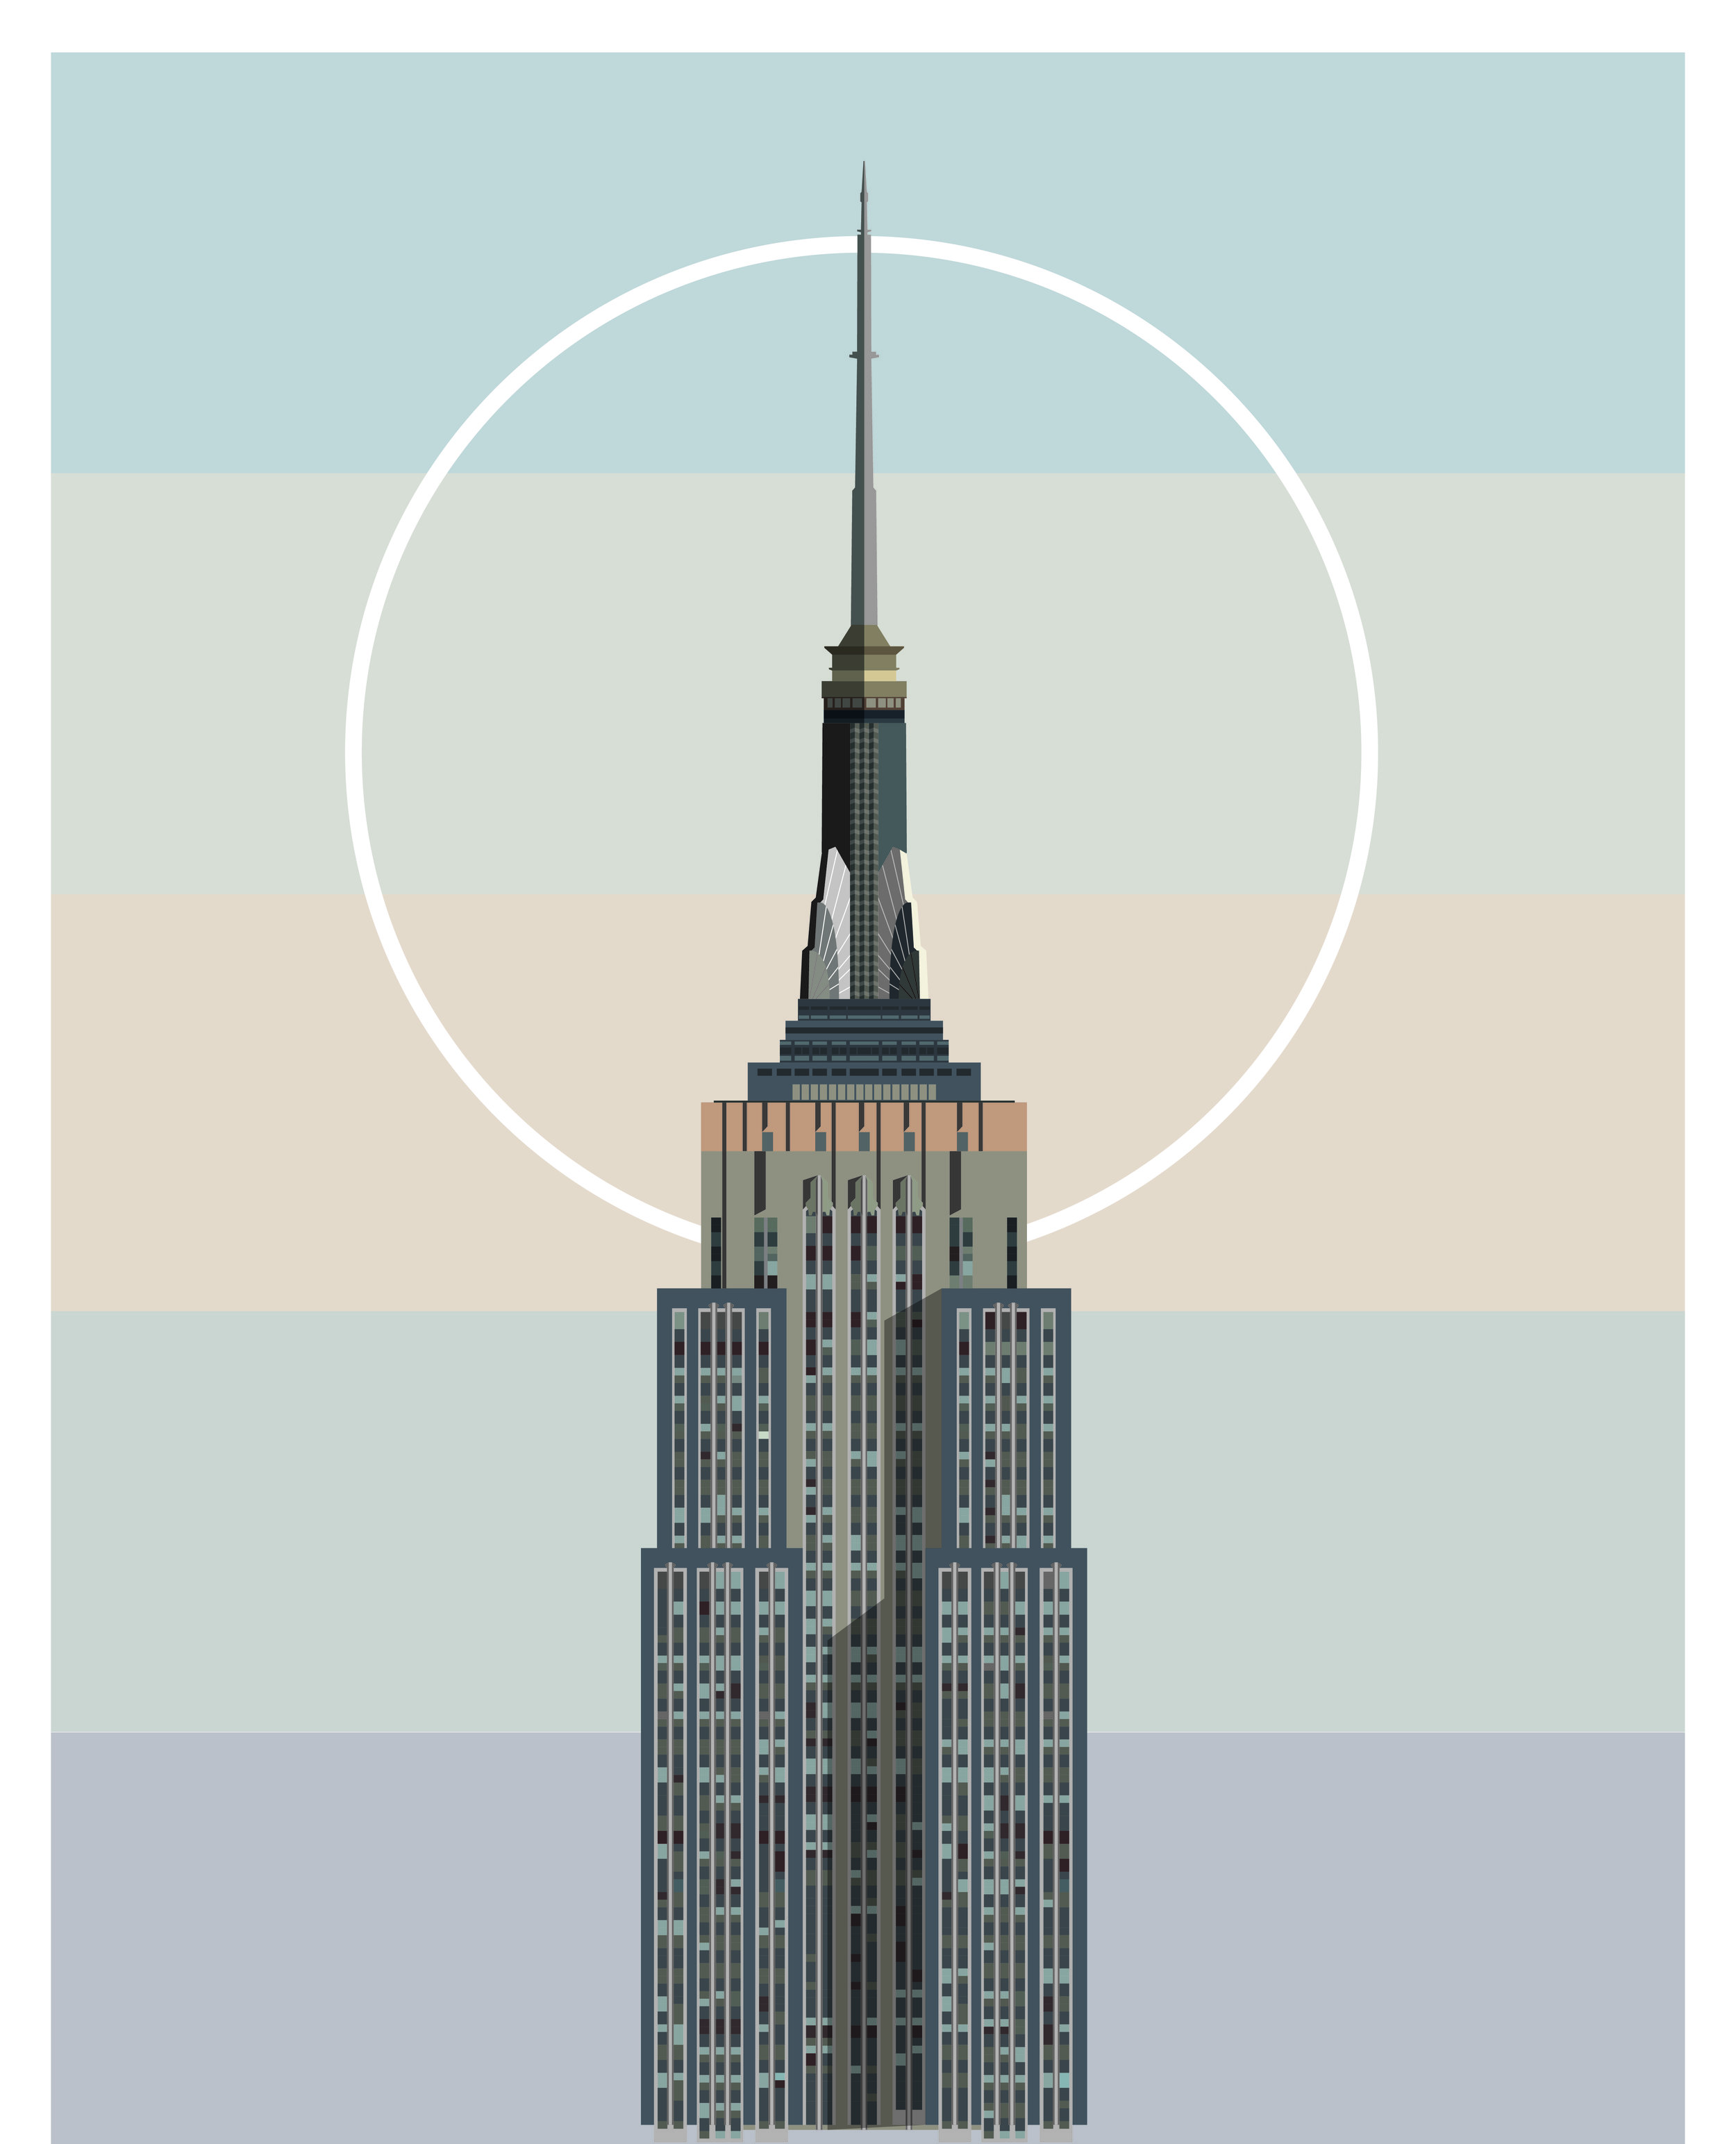 Empire_State_Building_v06-02.jpg